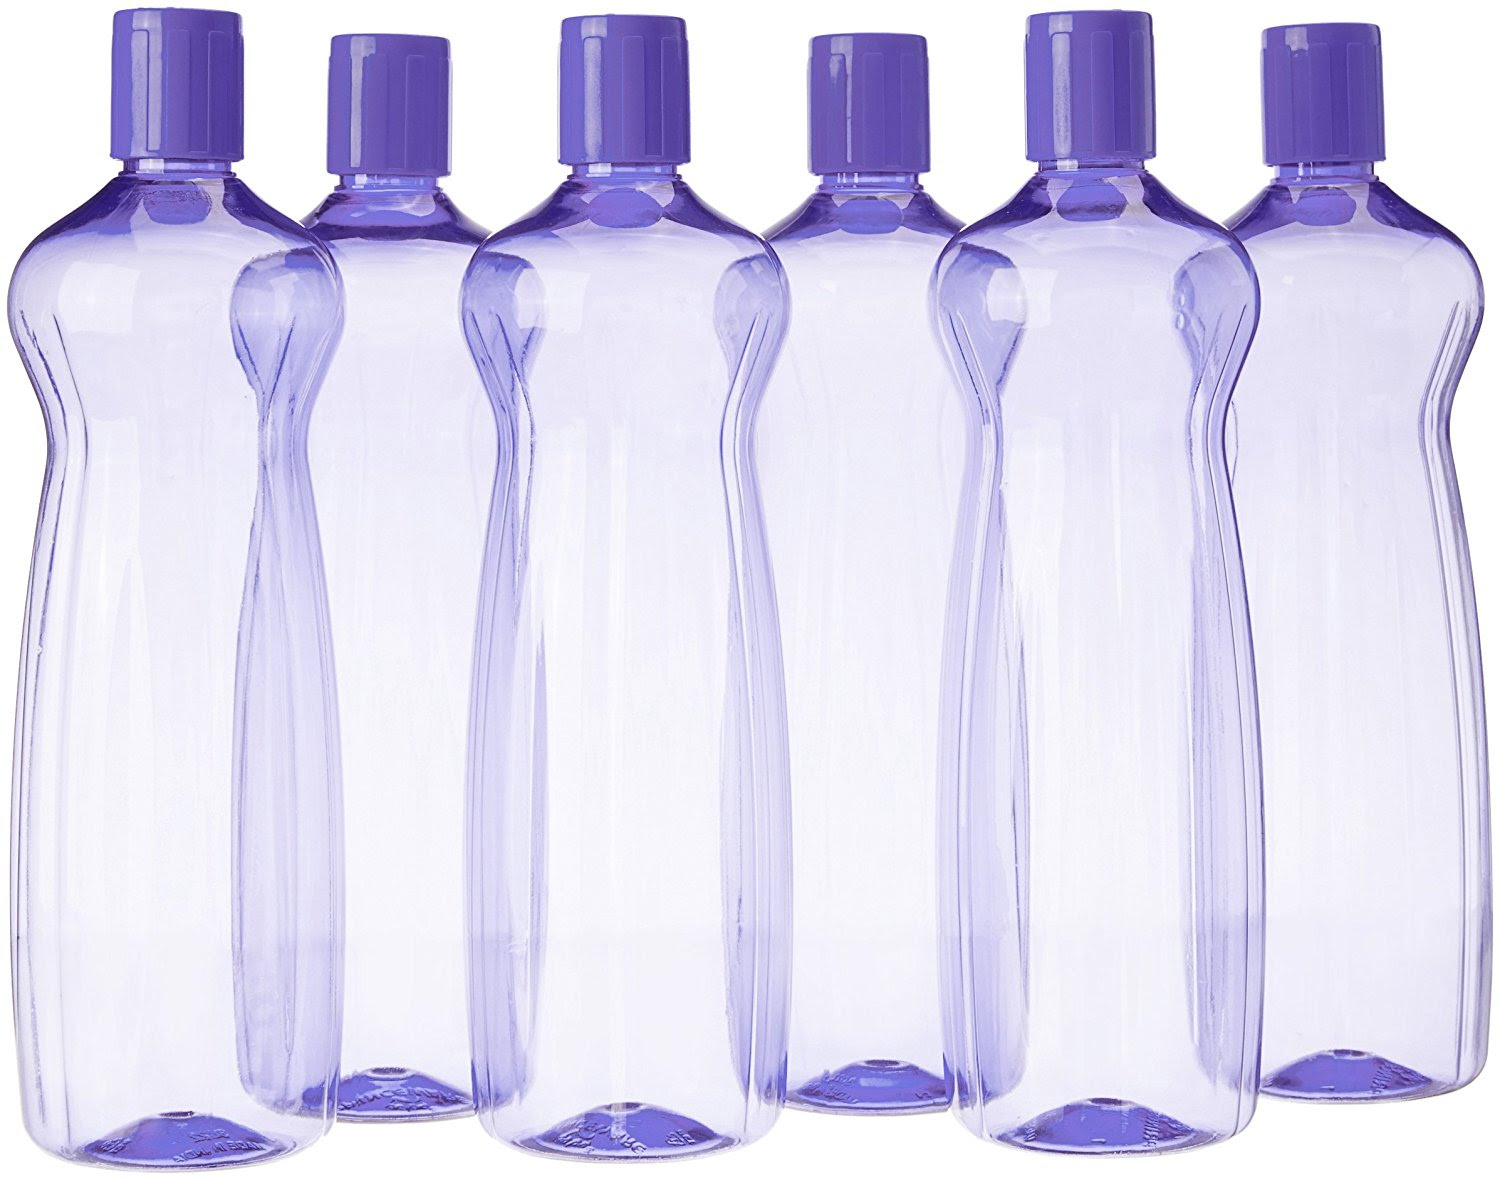 Princeware Aster Fridge Bottle Set of 6 at Rs.142 Only + Free Shipping